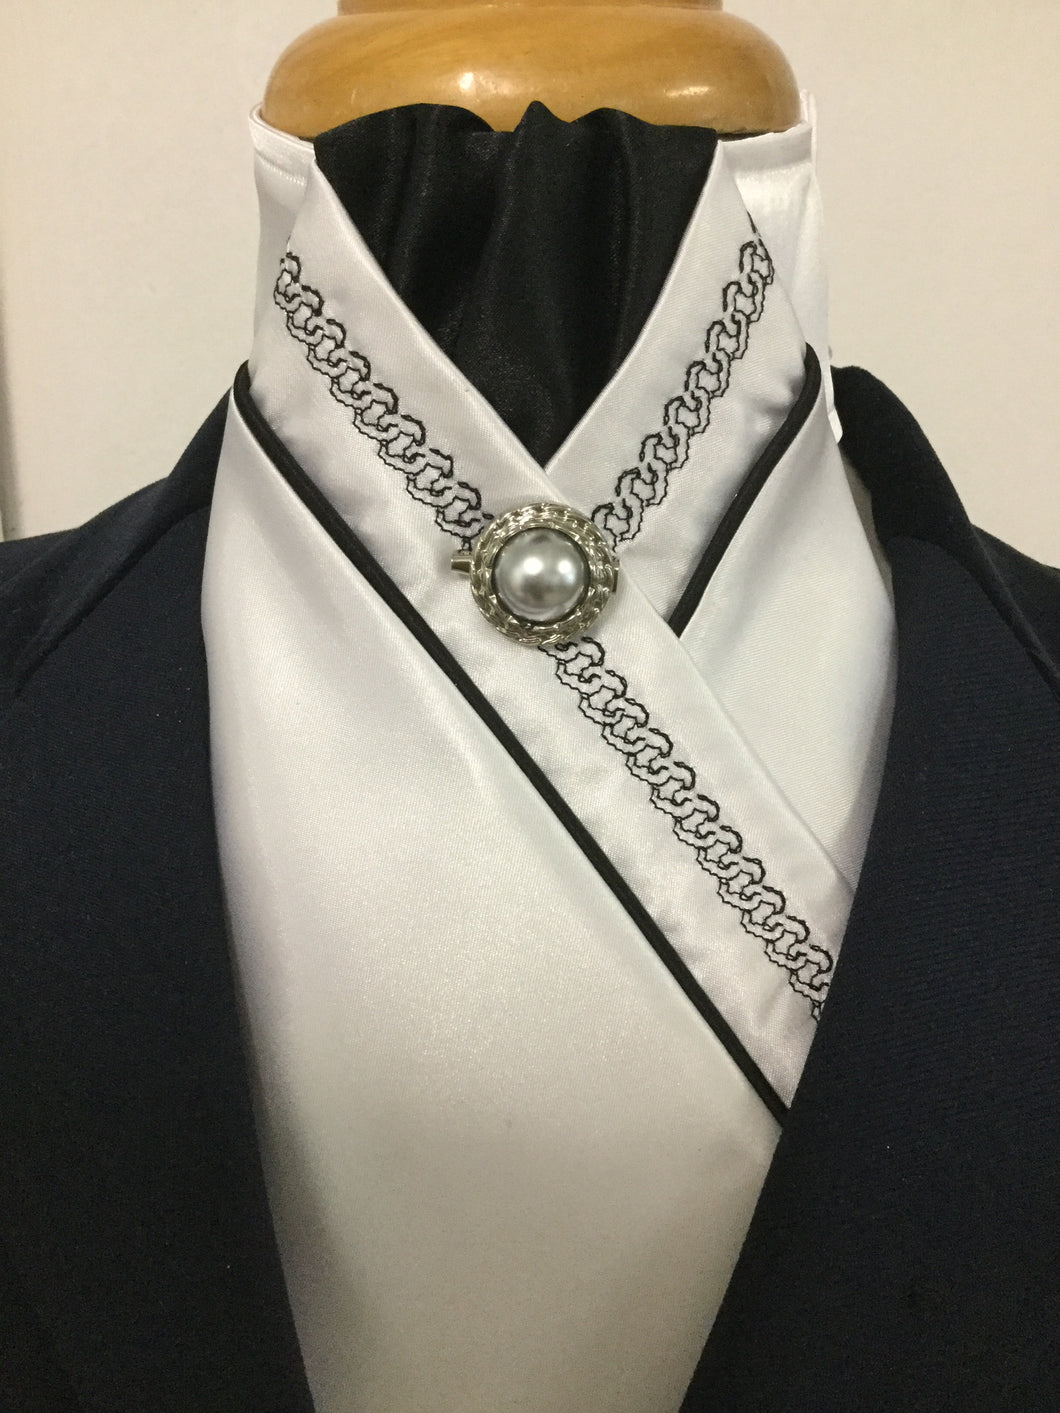 HHD White Satin Pretied Stock Tie Chain Embroidered Black